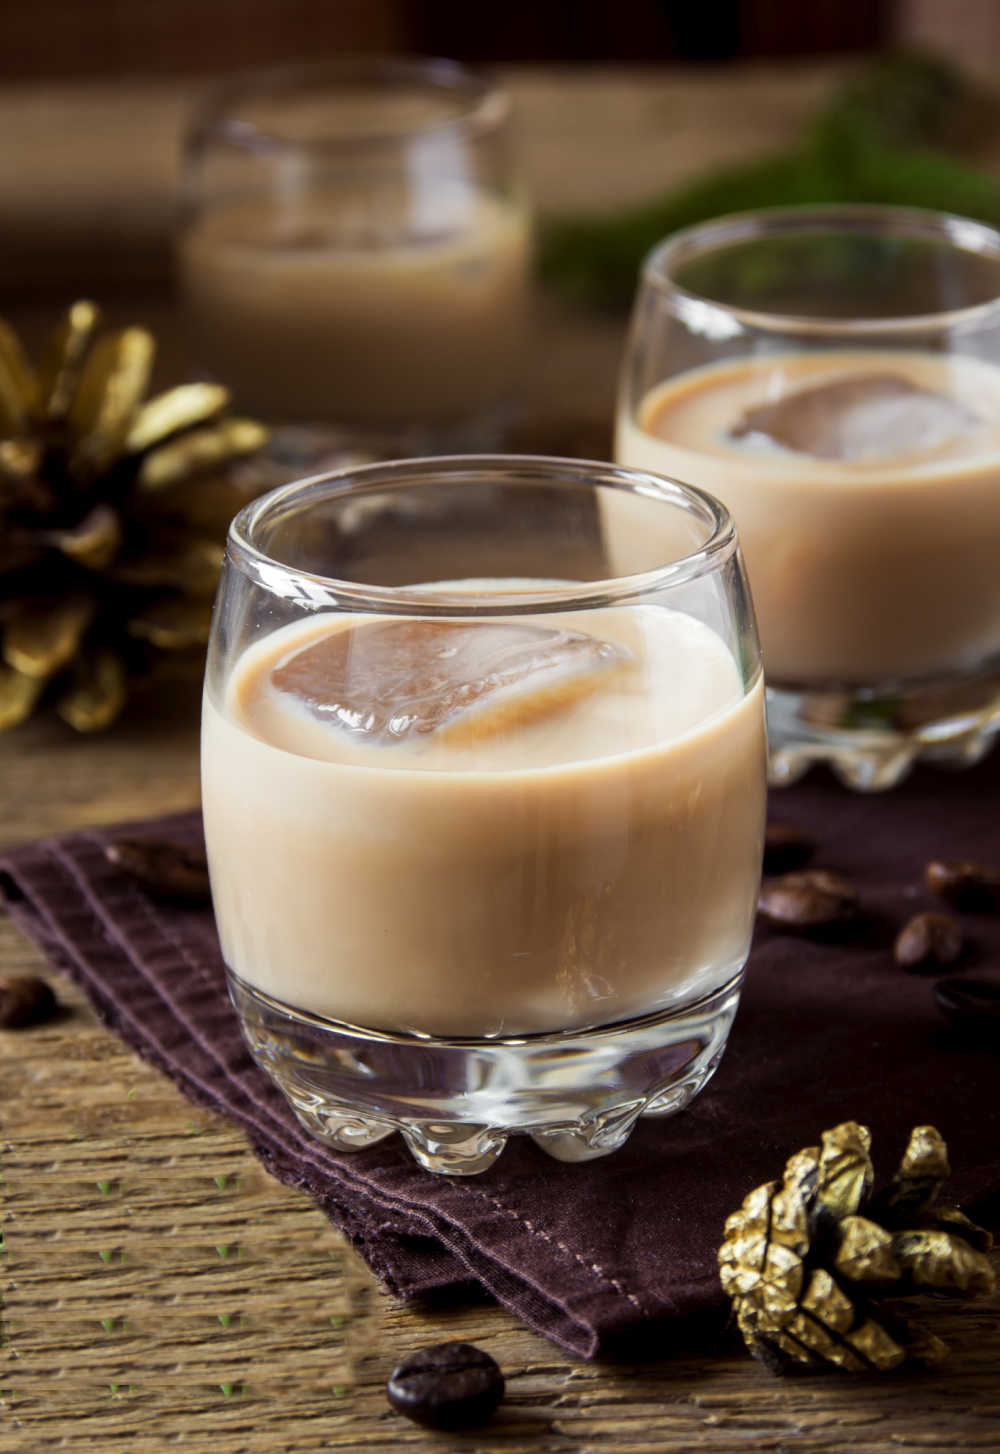 Homemade Baileys Irish cream in two glasses with ice near some pine cones.